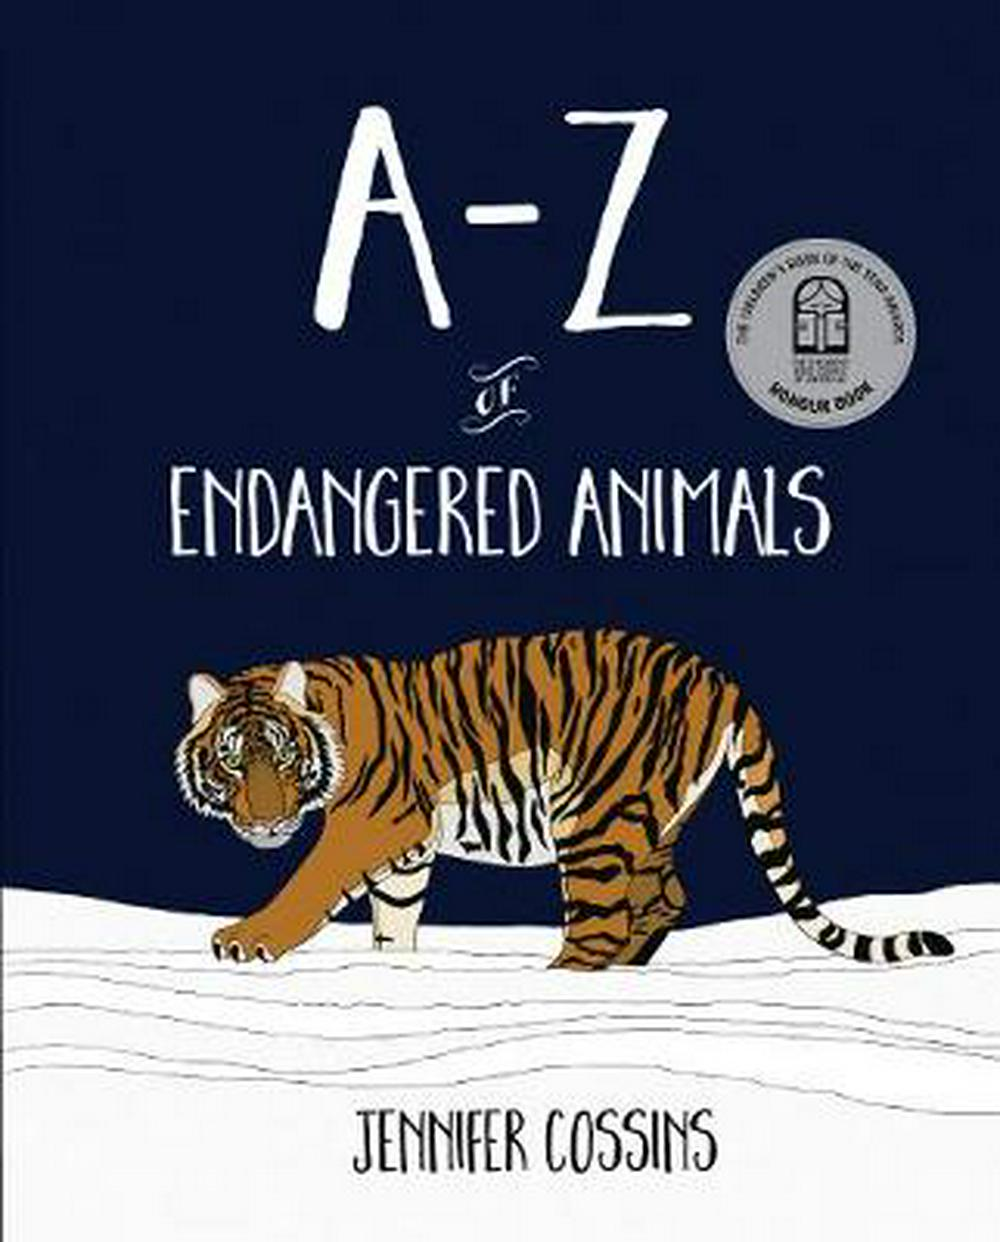 A-Z of Endangered Animals by Jennifer Cossins, ISBN: 9780734417954